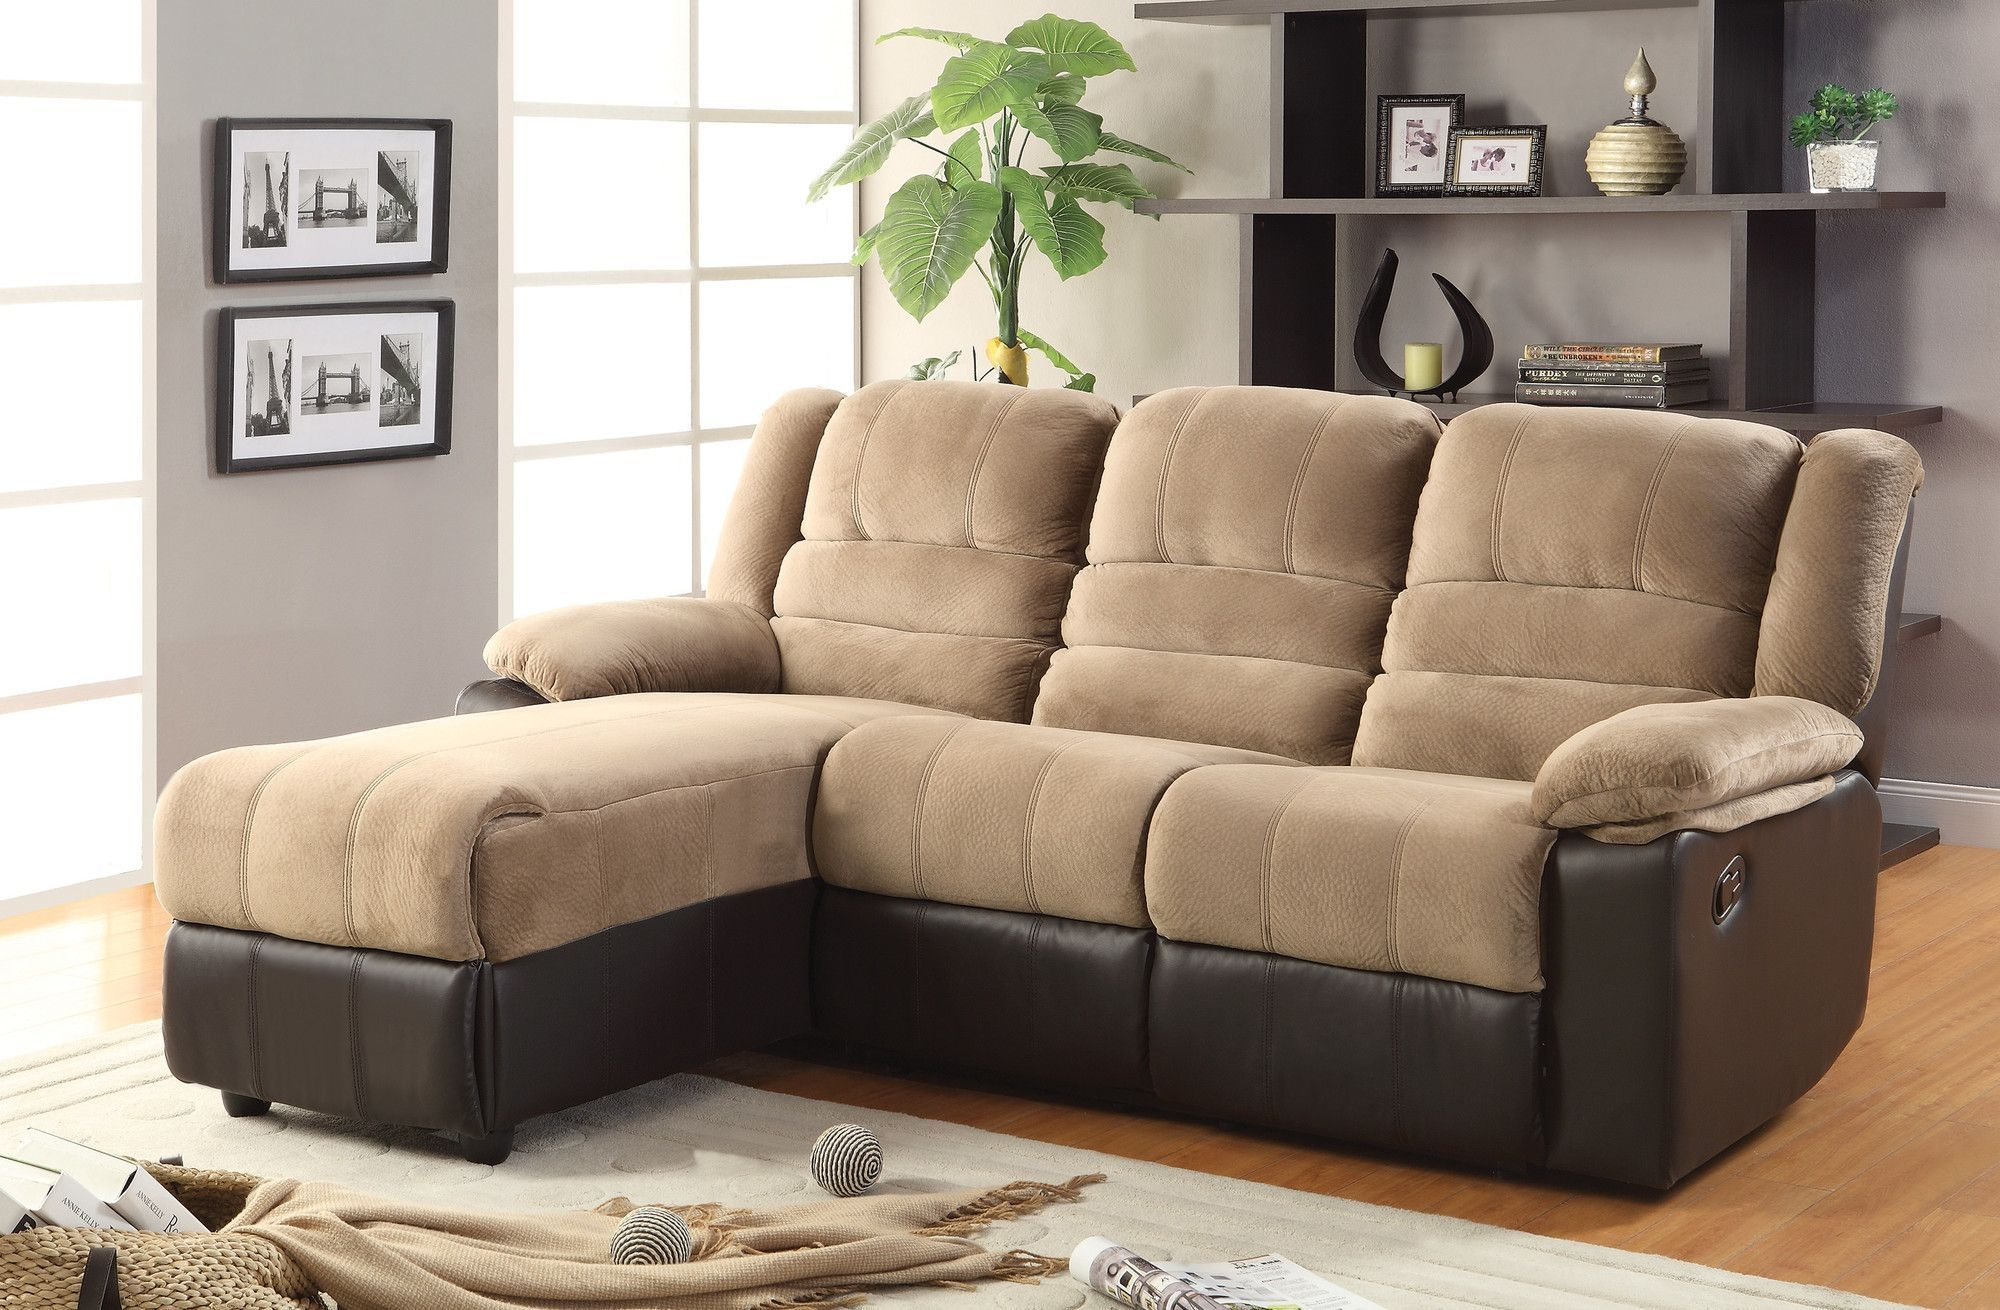 Charmant Sectional Sofa With Chaise Lounge And Recliner Sectional .